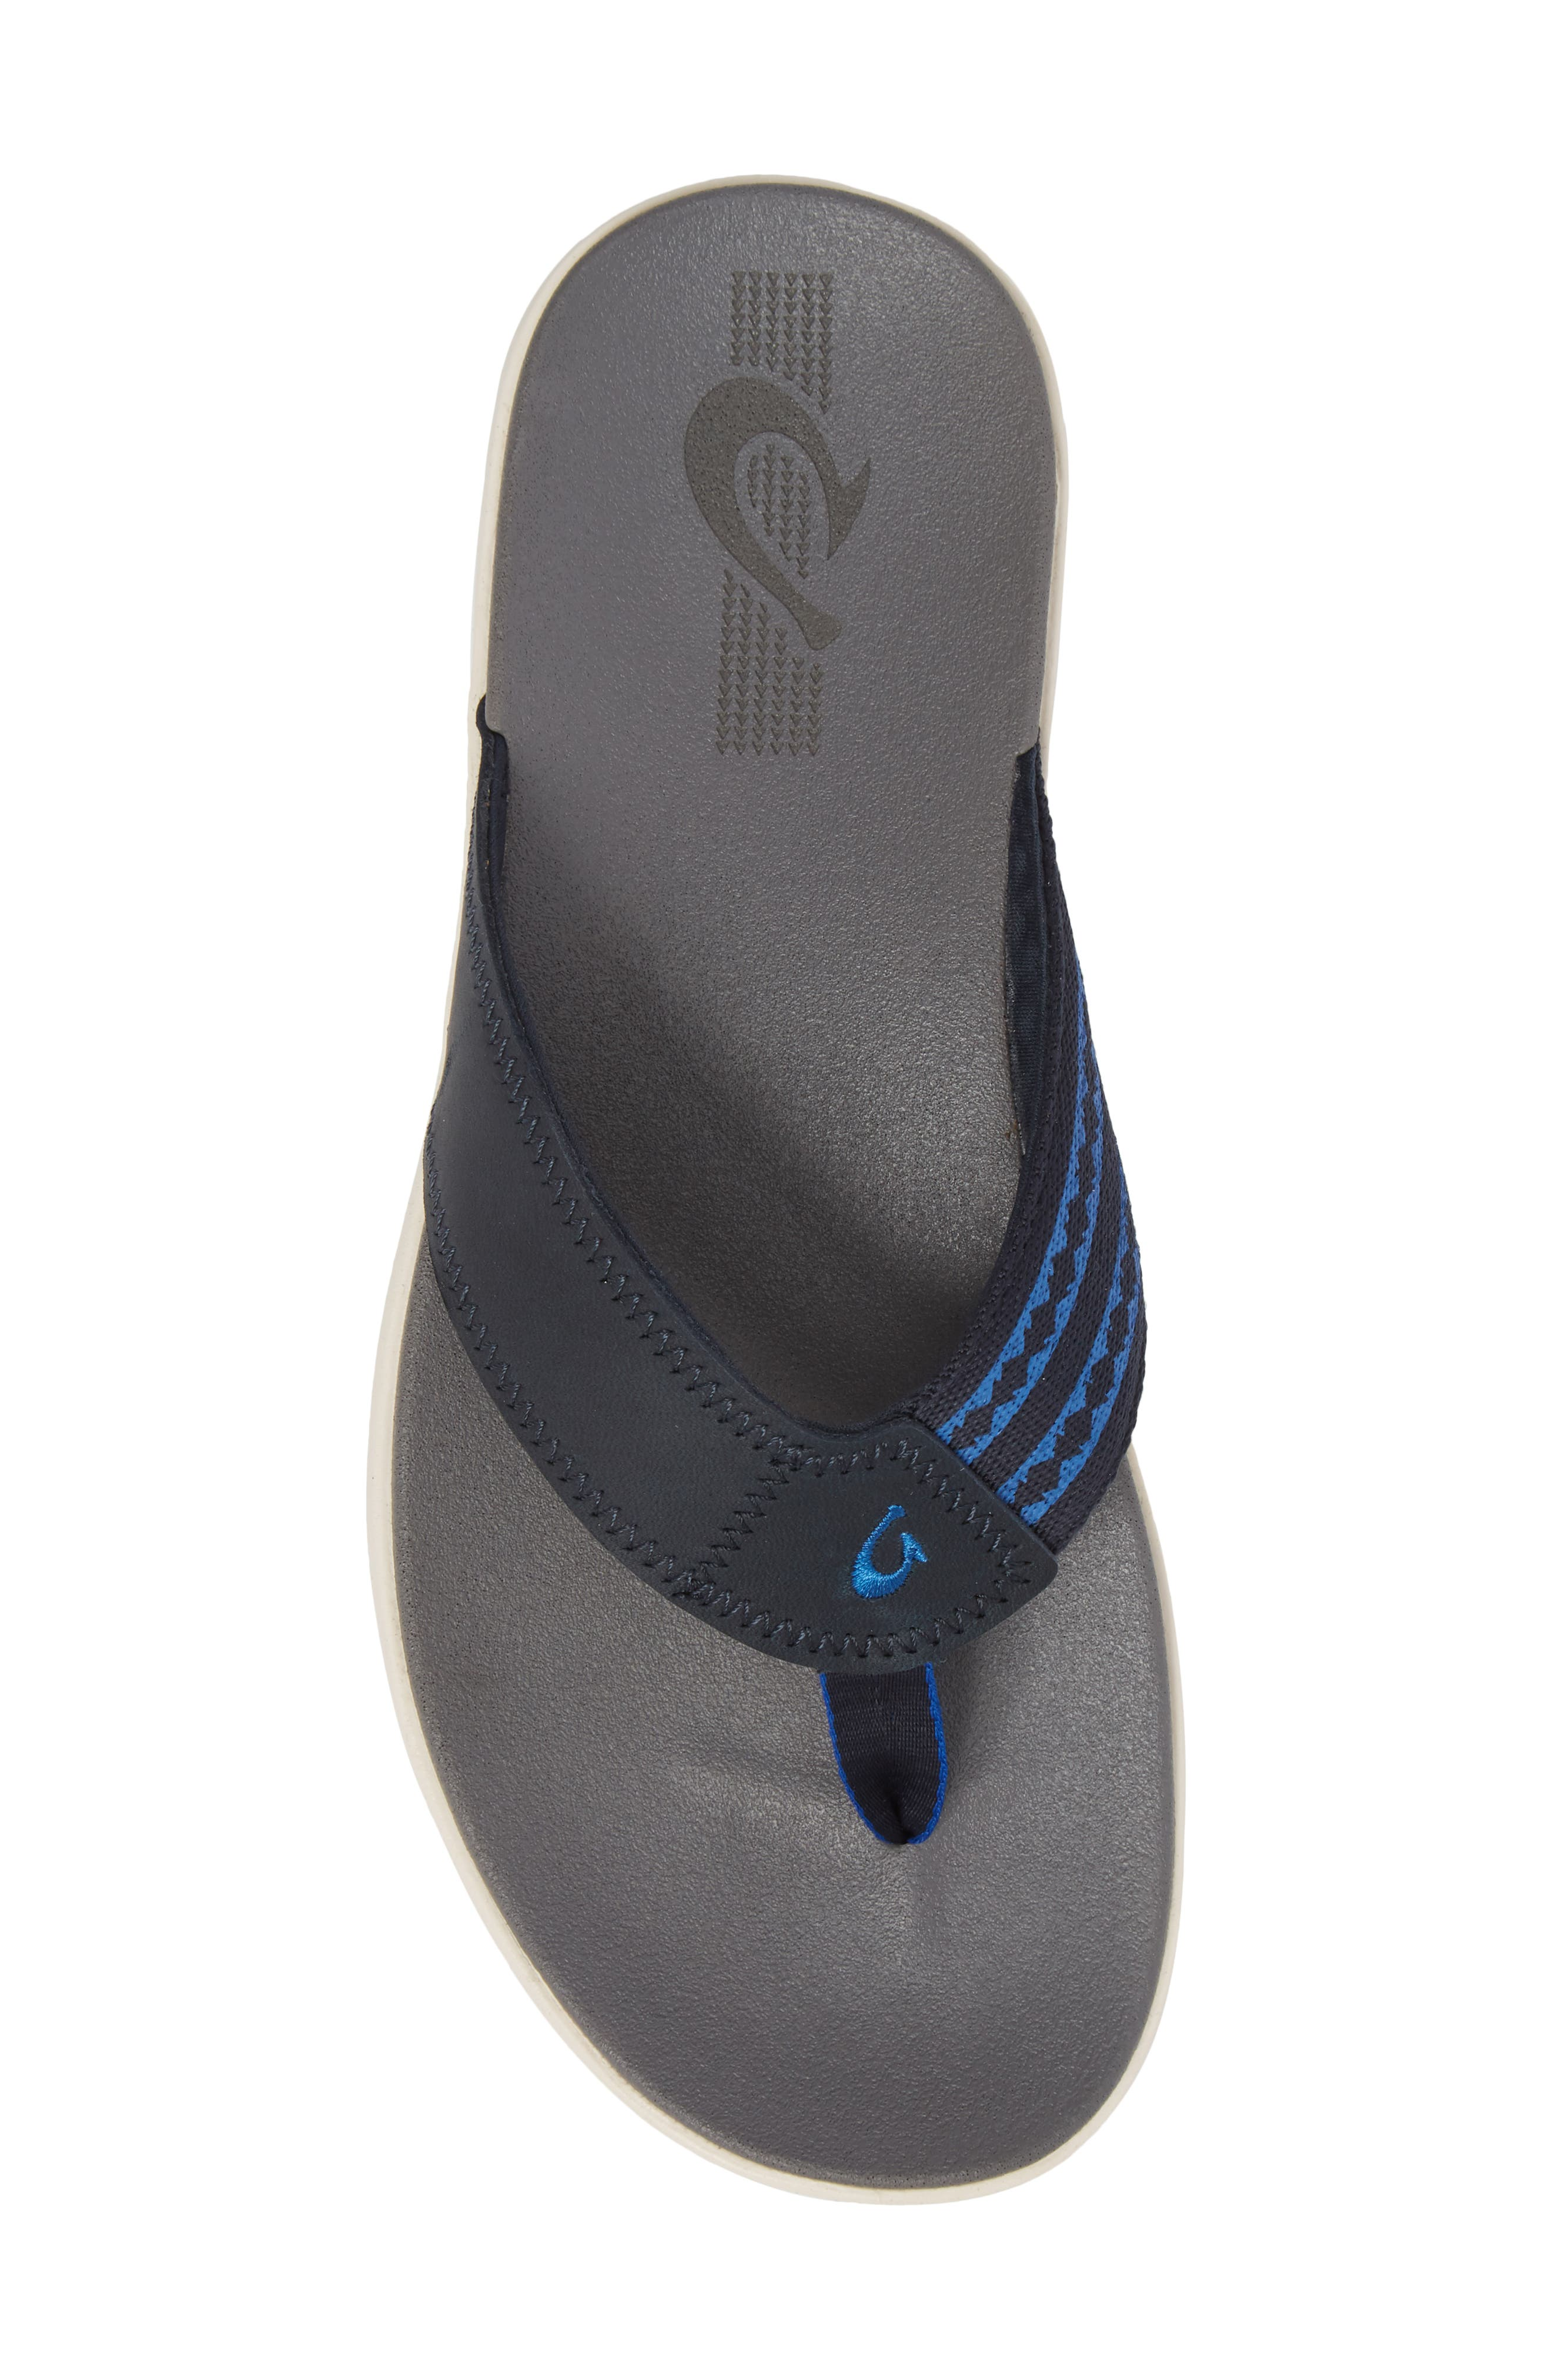 Kinona Flip Flop,                             Alternate thumbnail 5, color,                             Trench Blue/ Charcoal Leather